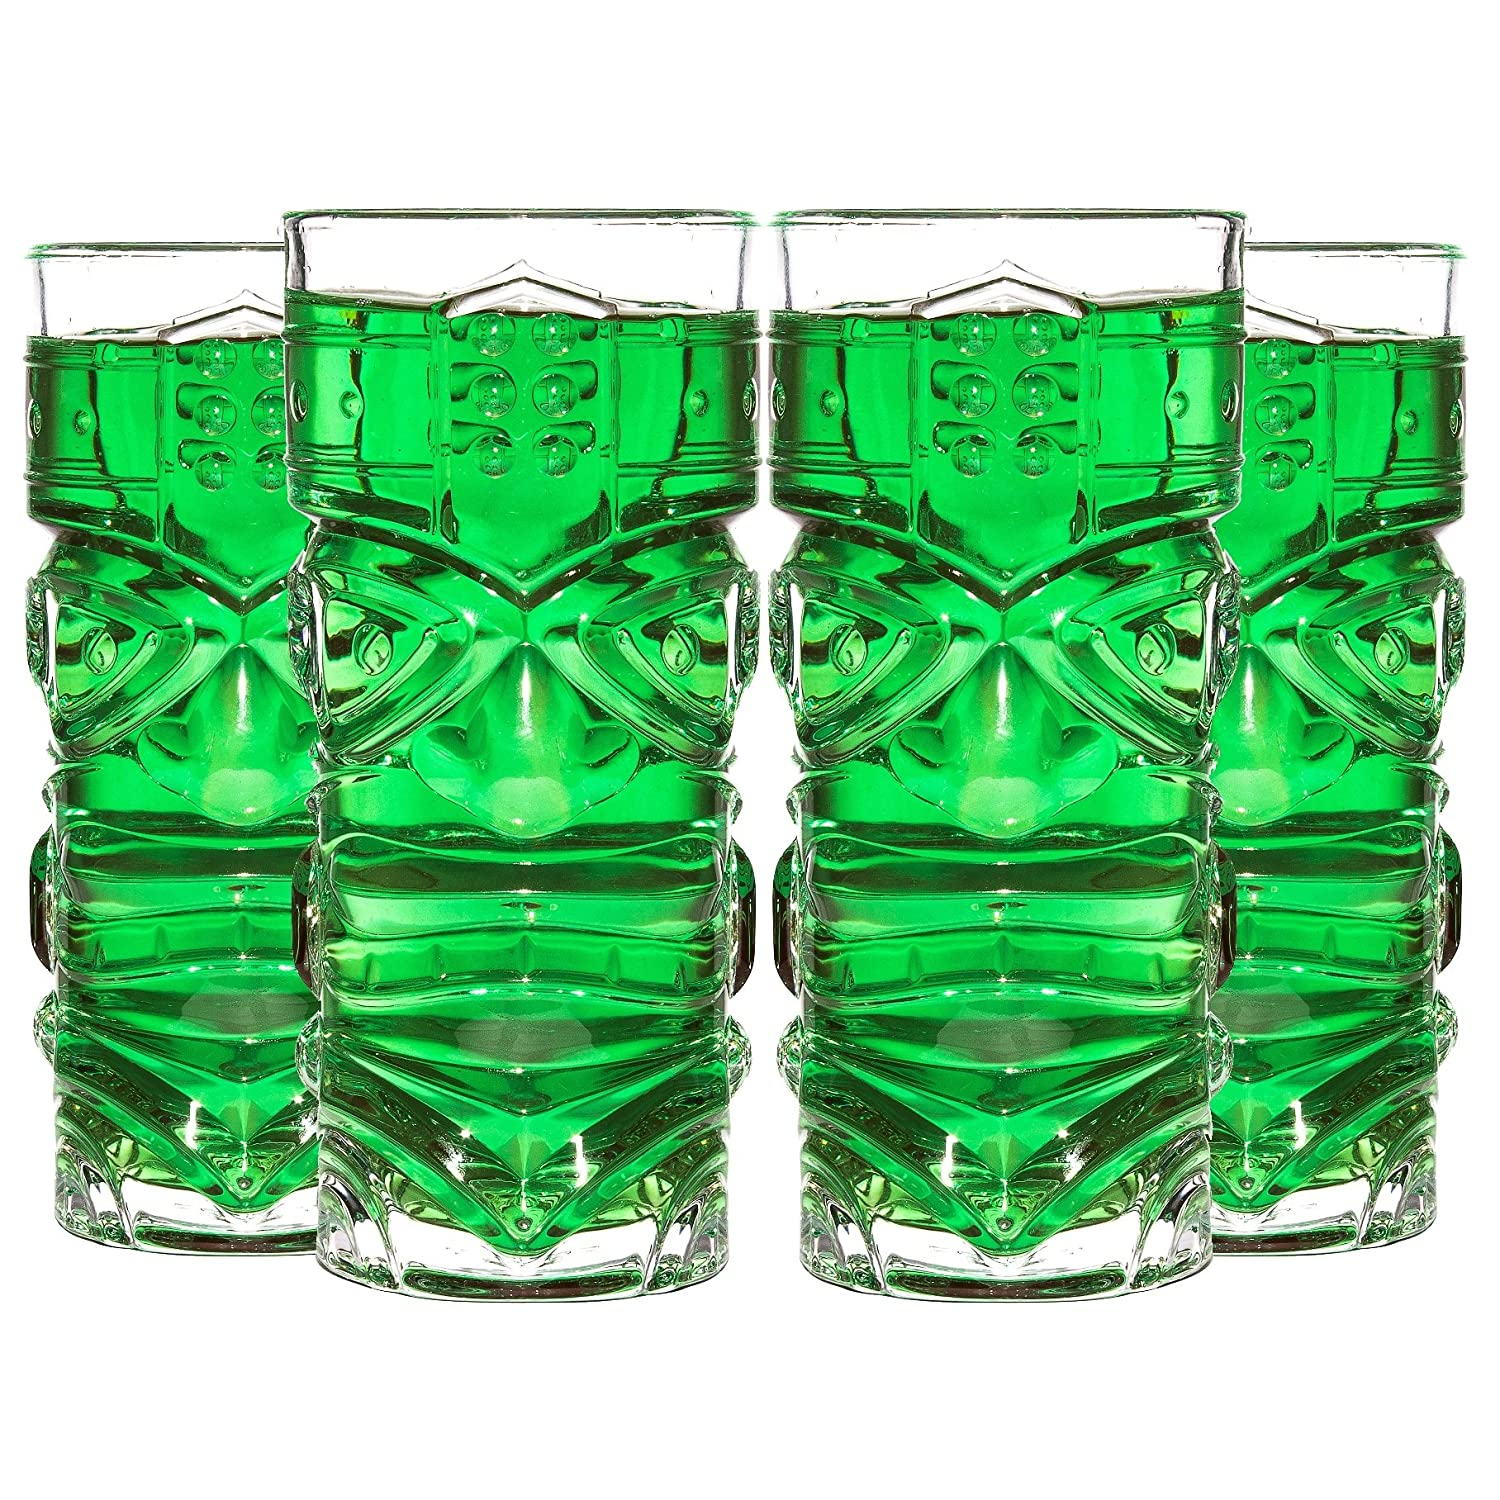 CKB Ltd® Pack of 4 TIKI Bar Cocktail Glasses - Ideal for a Cocktail Rum-Based Mixed Drink Mai Tai Long Island Iced Tea or Zombie Cocktails